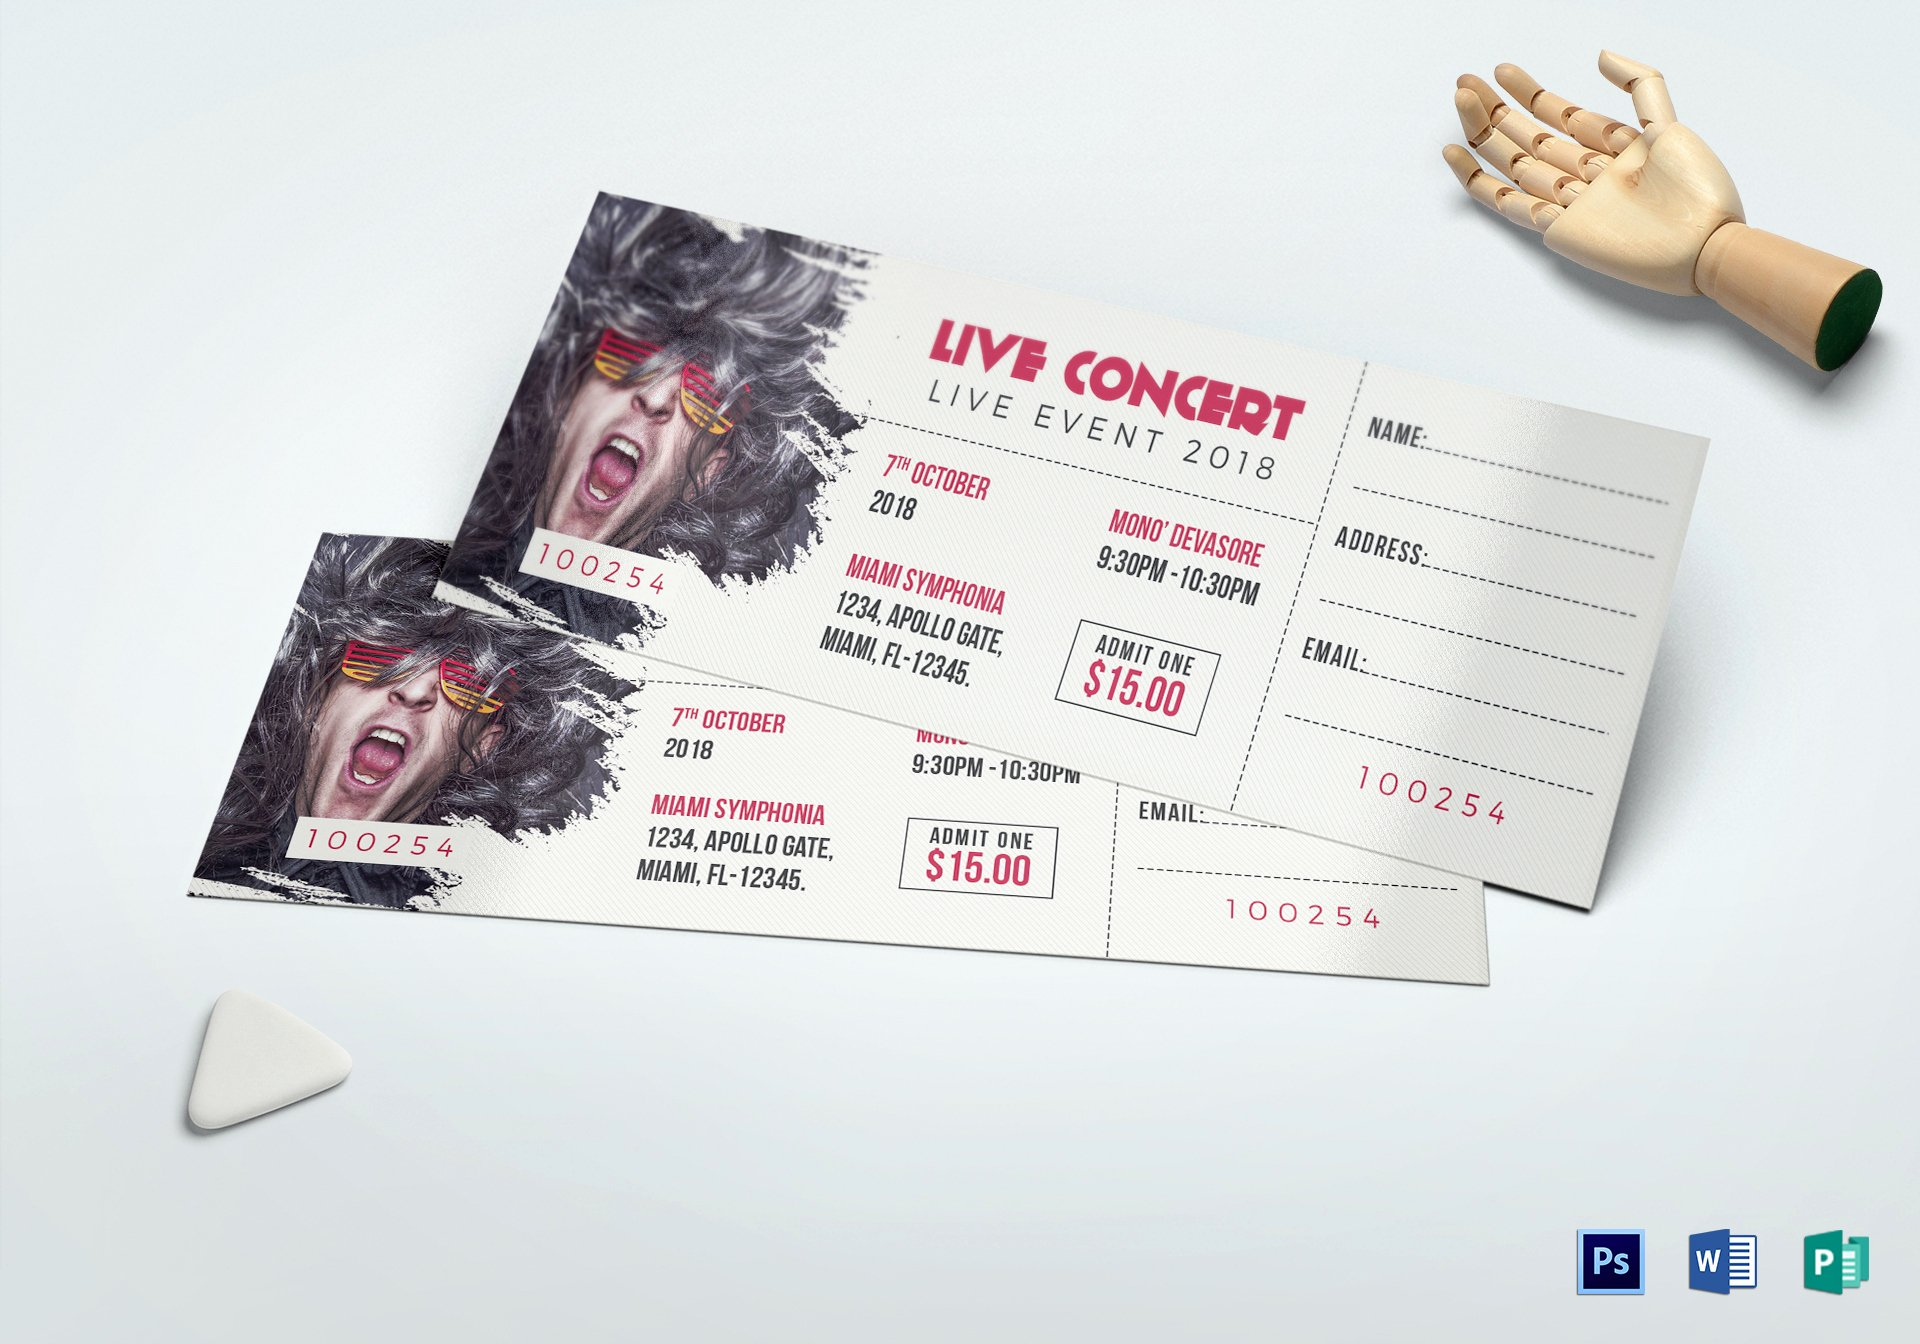 Concert Ticket Template Free Lovely Live Concert Ticket Design Template In Word Psd Pages